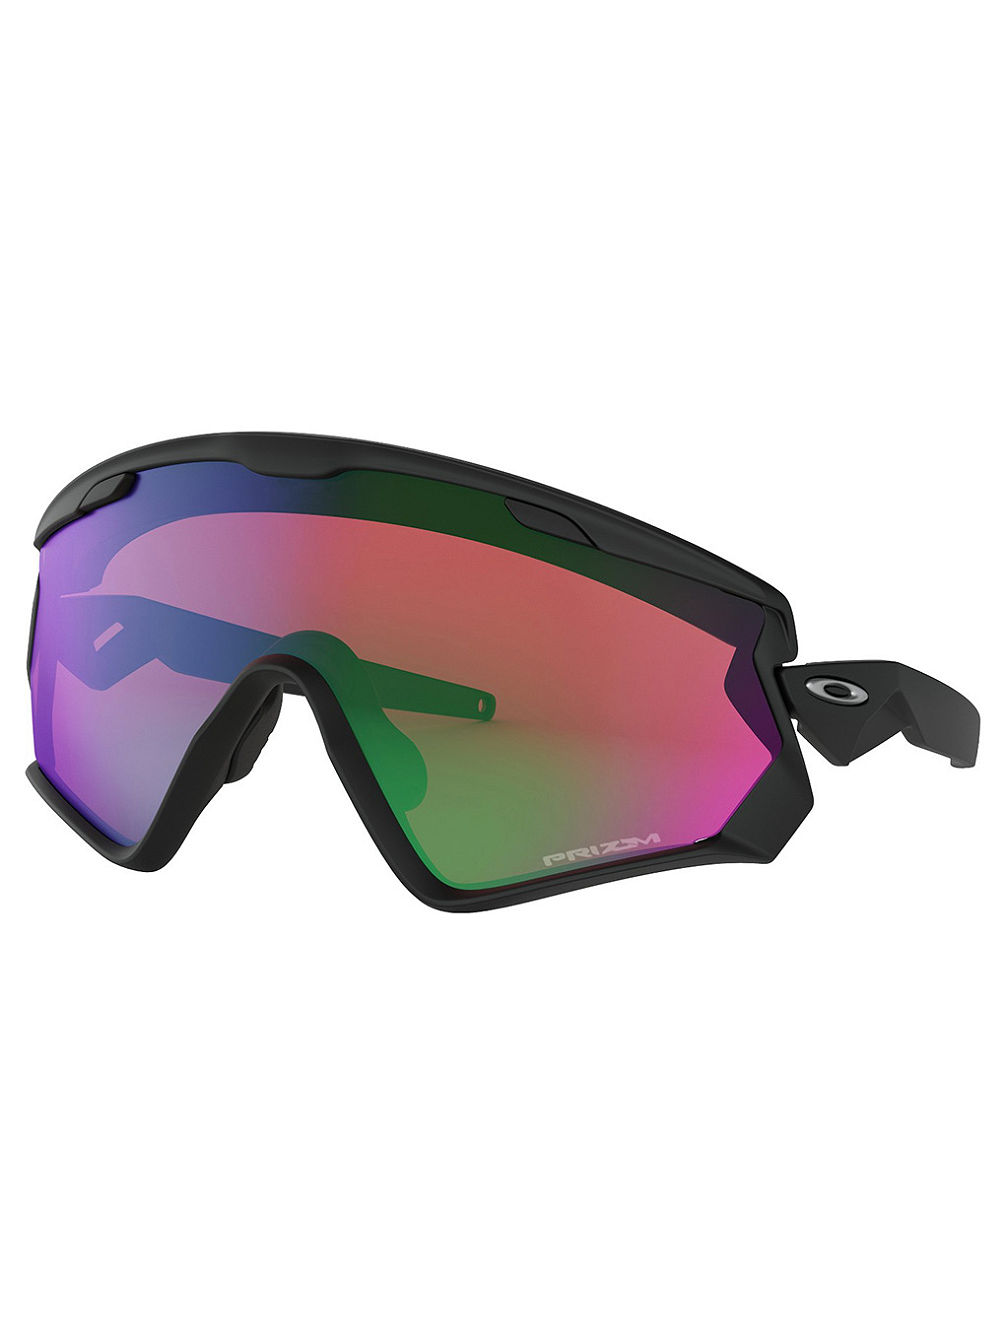 Wind Jacket 2.0 Matte Black Sonnenbrille